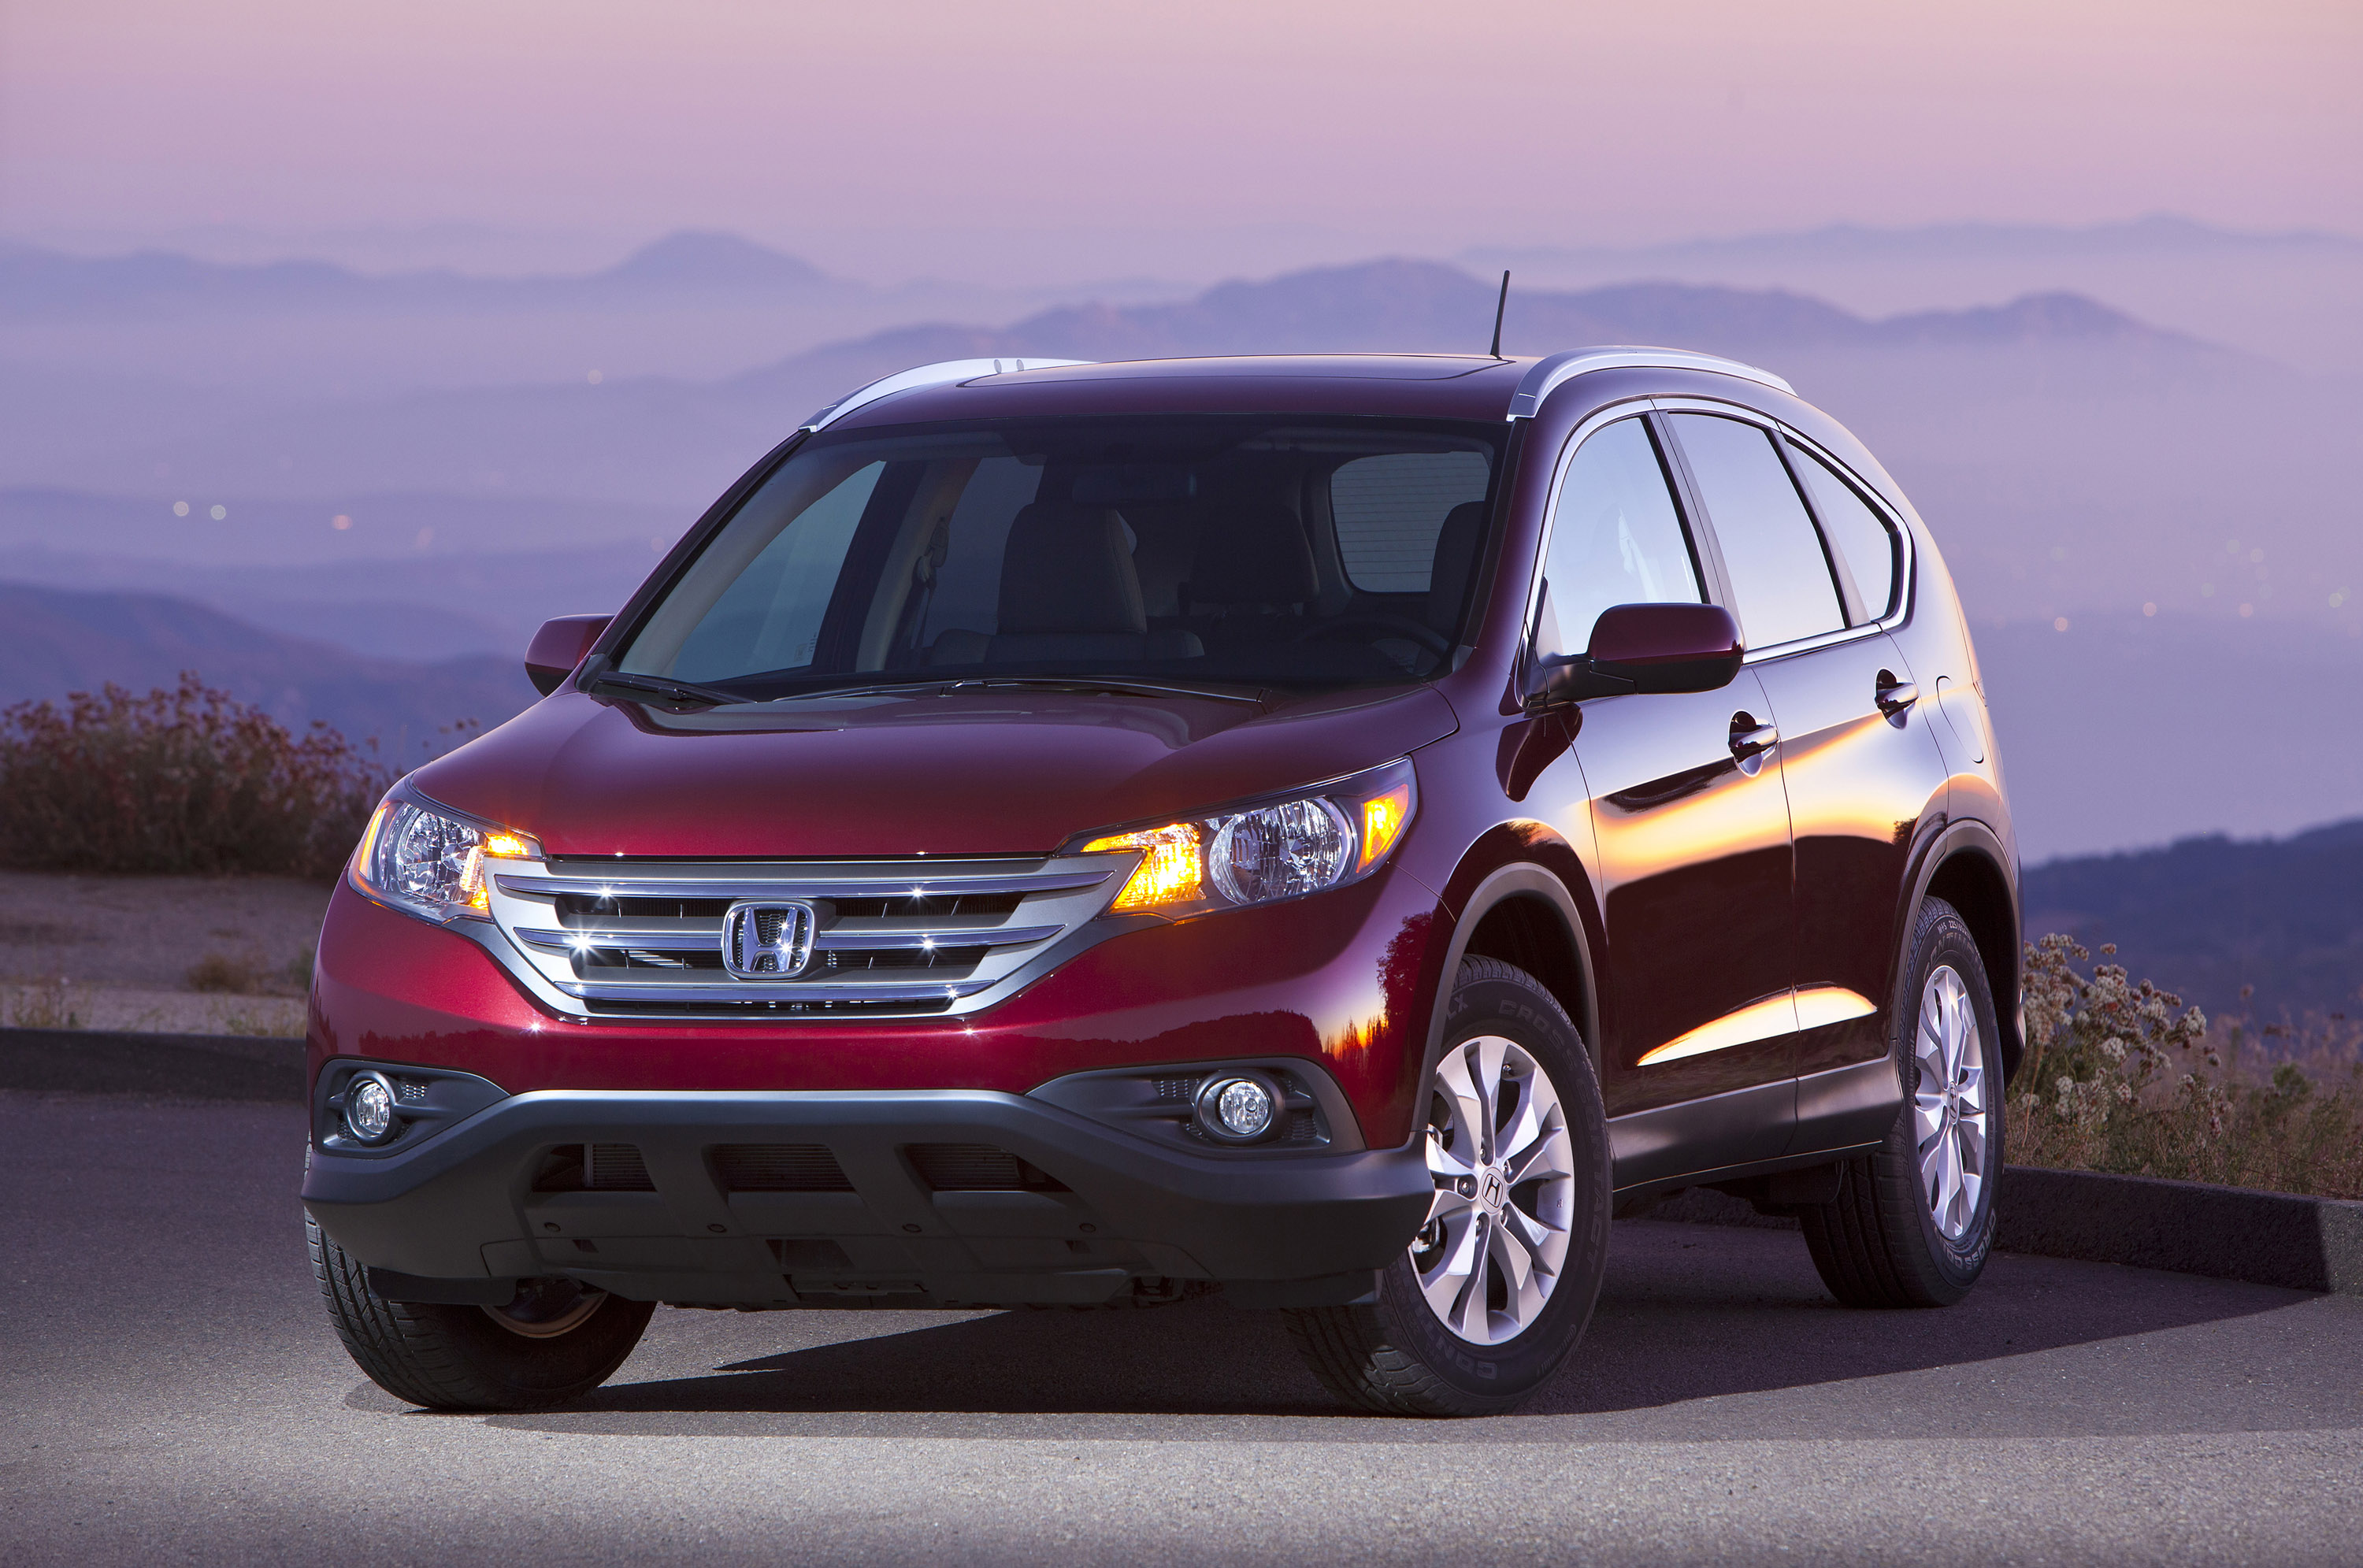 Honda CR-V photo #1